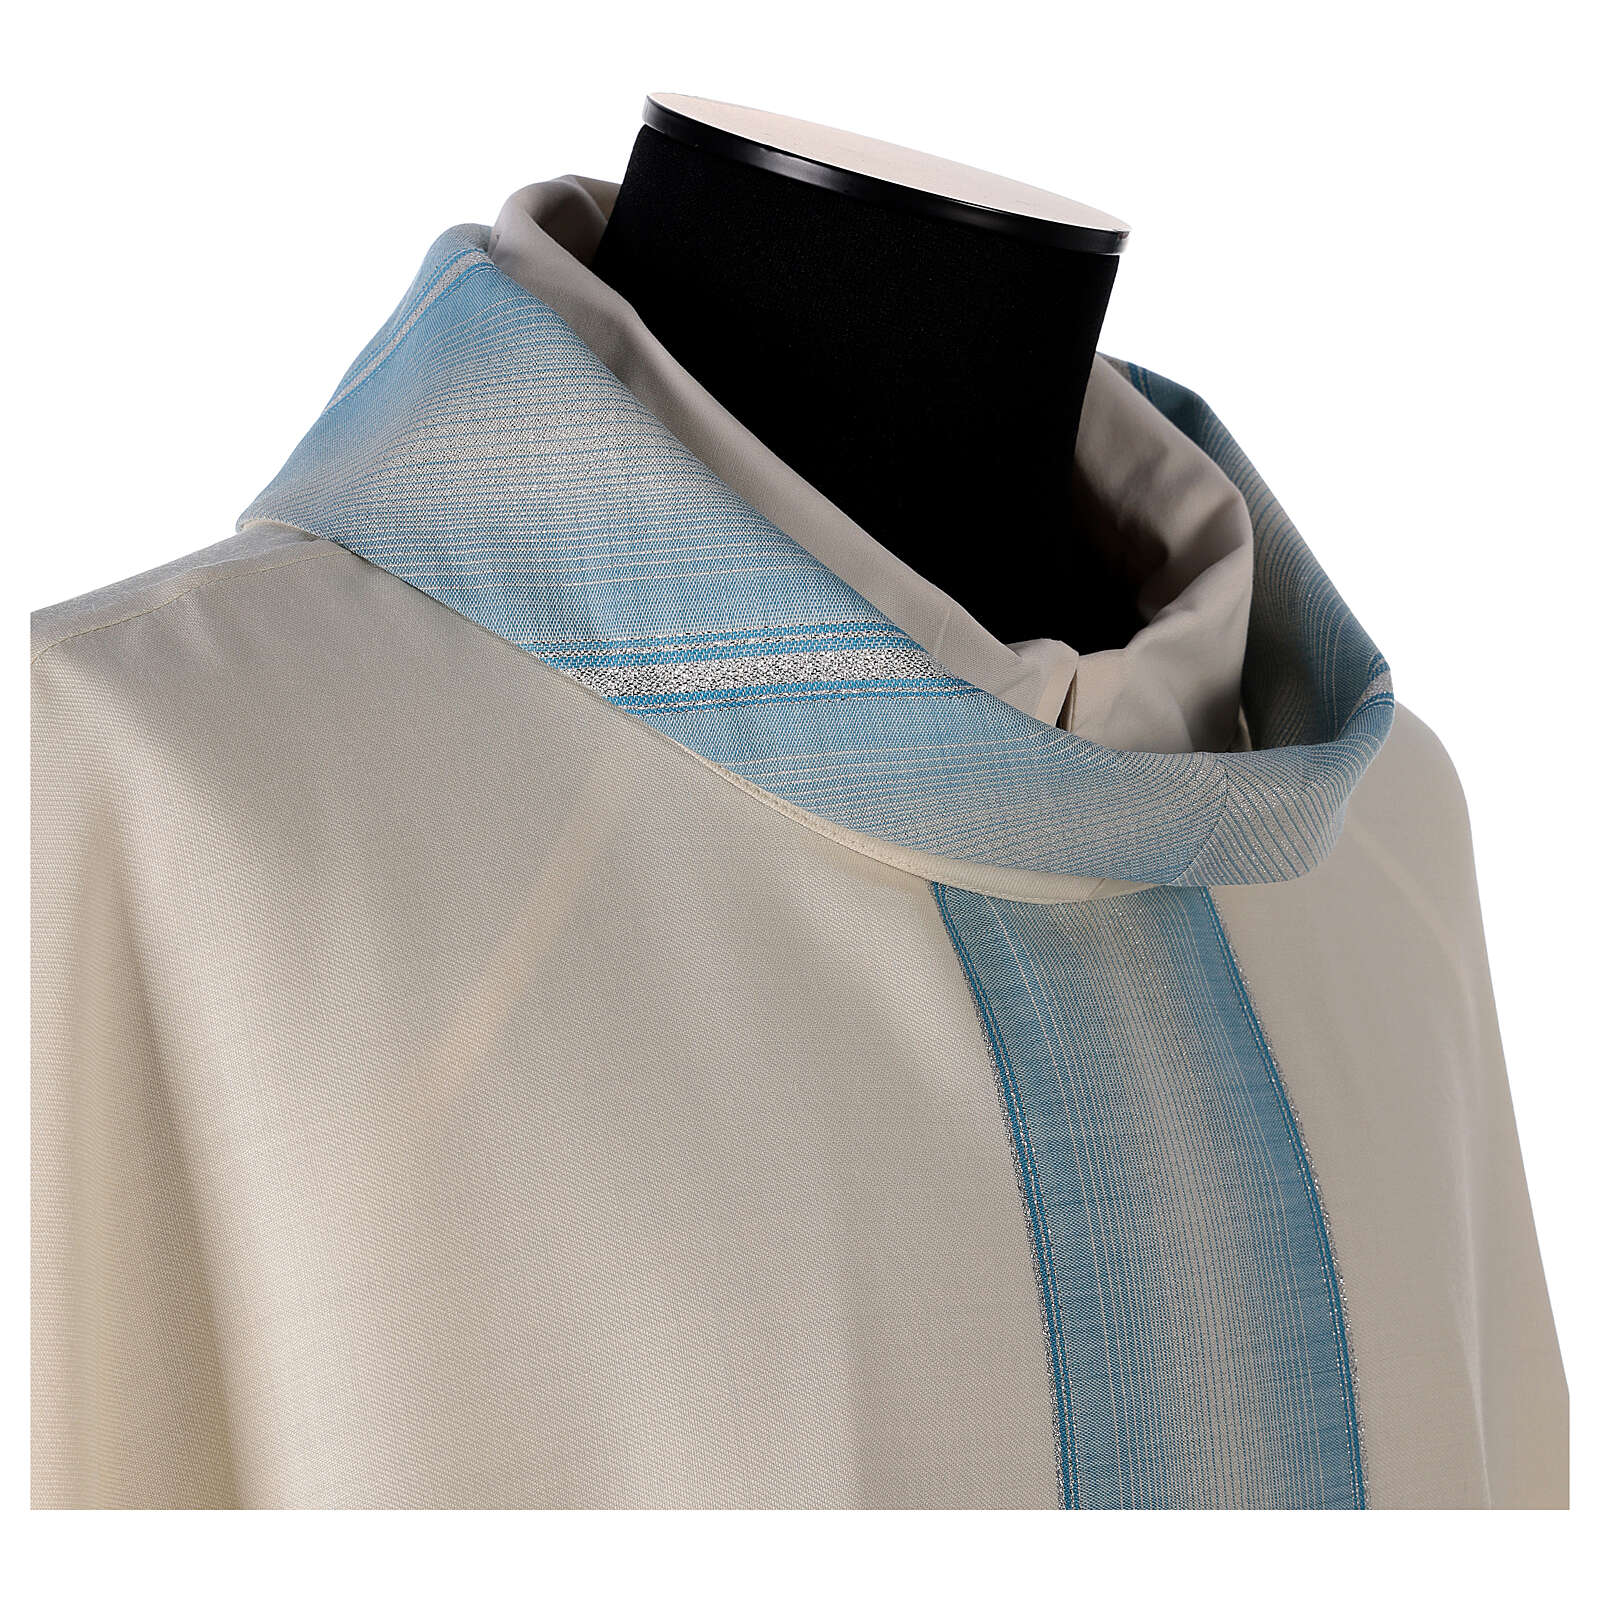 Marian chasuble with neck stripe and striped design 97% wool 3% lurex 4